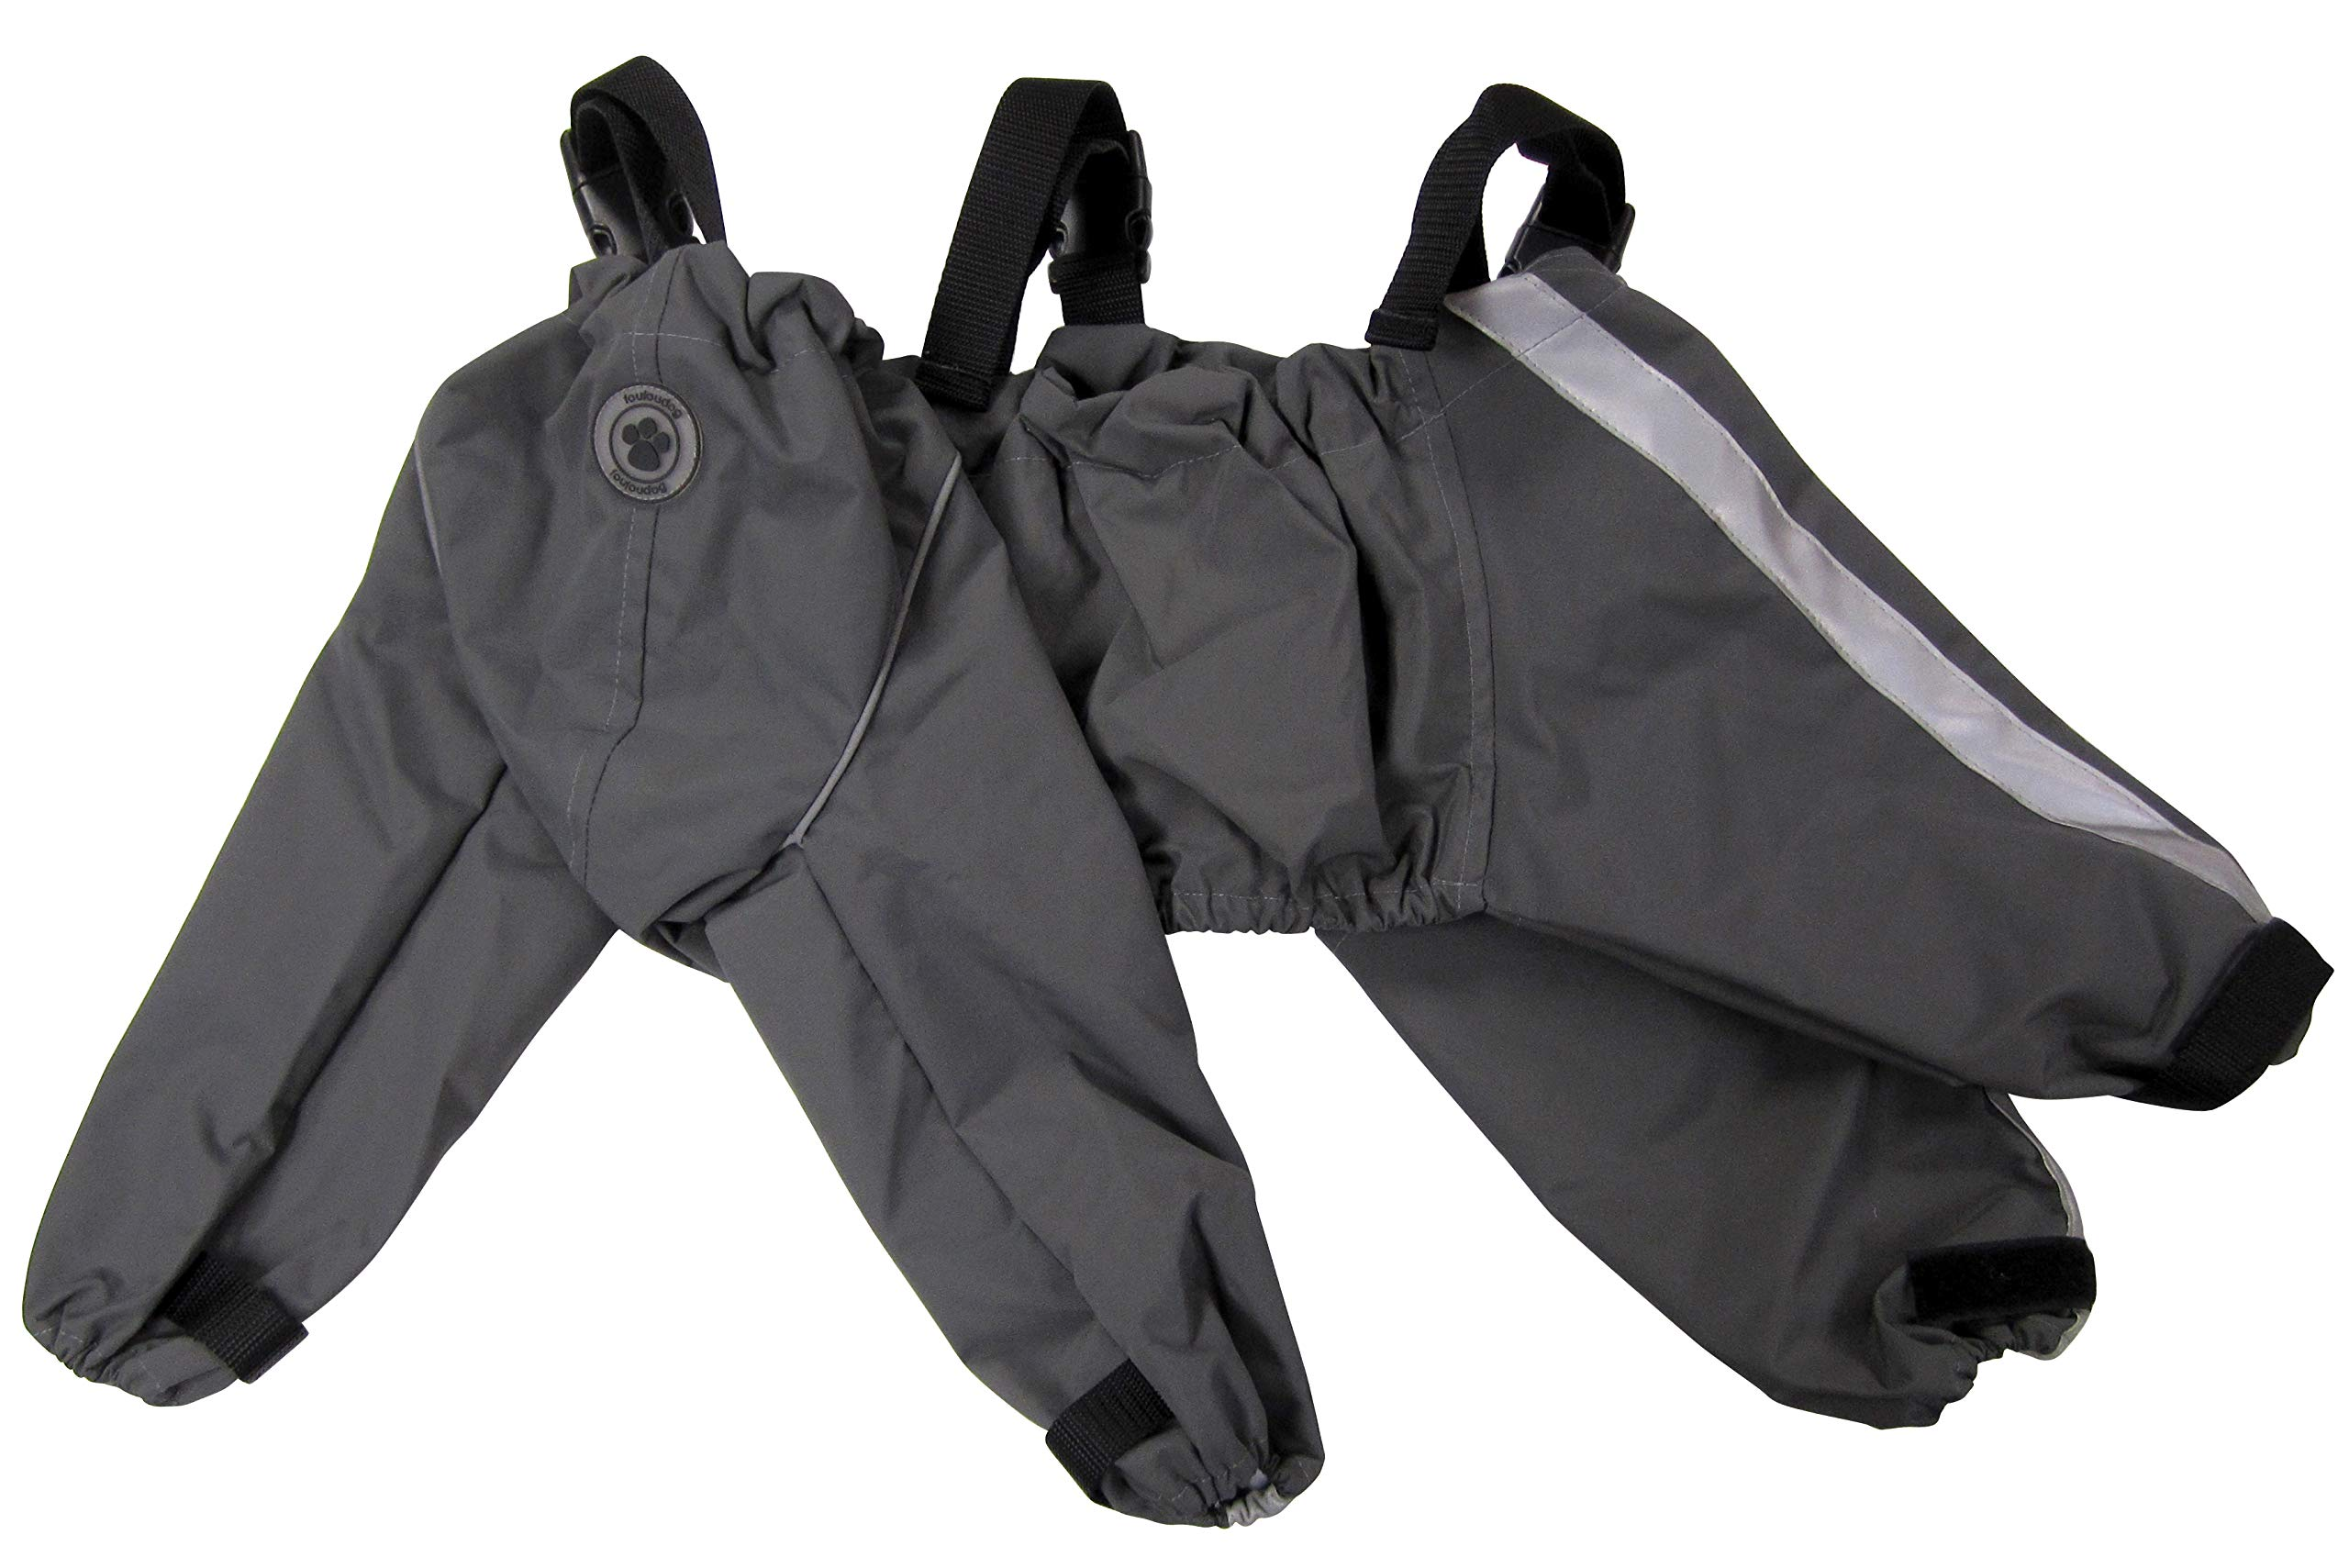 FouFou Dog 62561 Bodyguard Protective All-Weather Dog Pants, X-Large, Gray by FouFou Dog